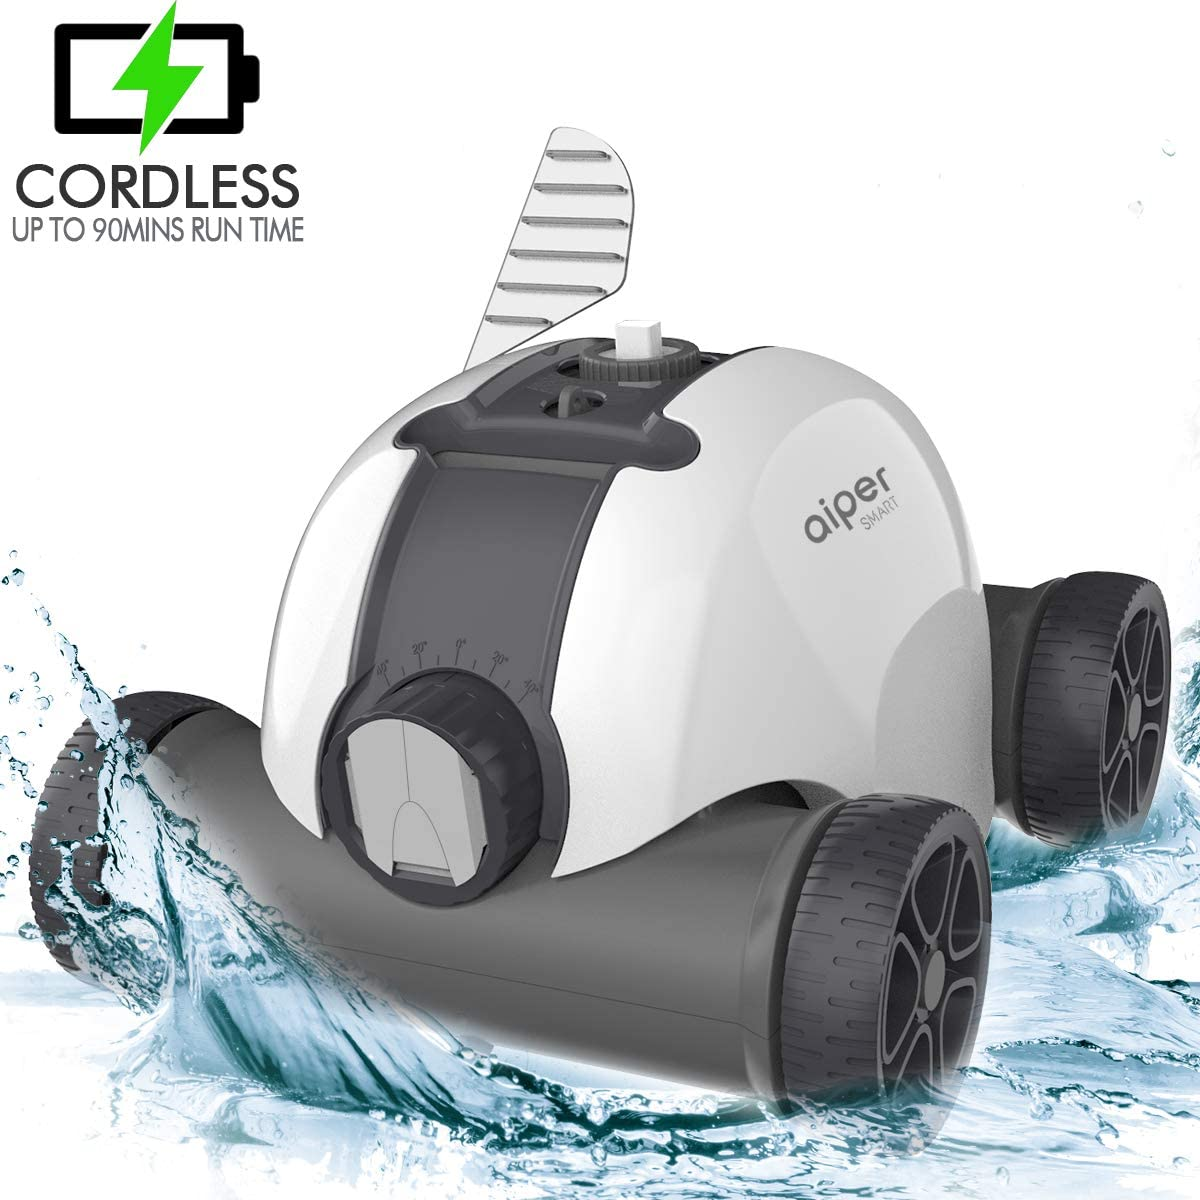 AIPER Cordless Automatic Pool Cleaner, Rechargeable Robotic Pool Cleaner with Up to 90 Mins Run Time, IPX8 Waterproof, Ideal for In-ground/Above Ground Swimming Pools with Flat Floor Up to 861sq/ft